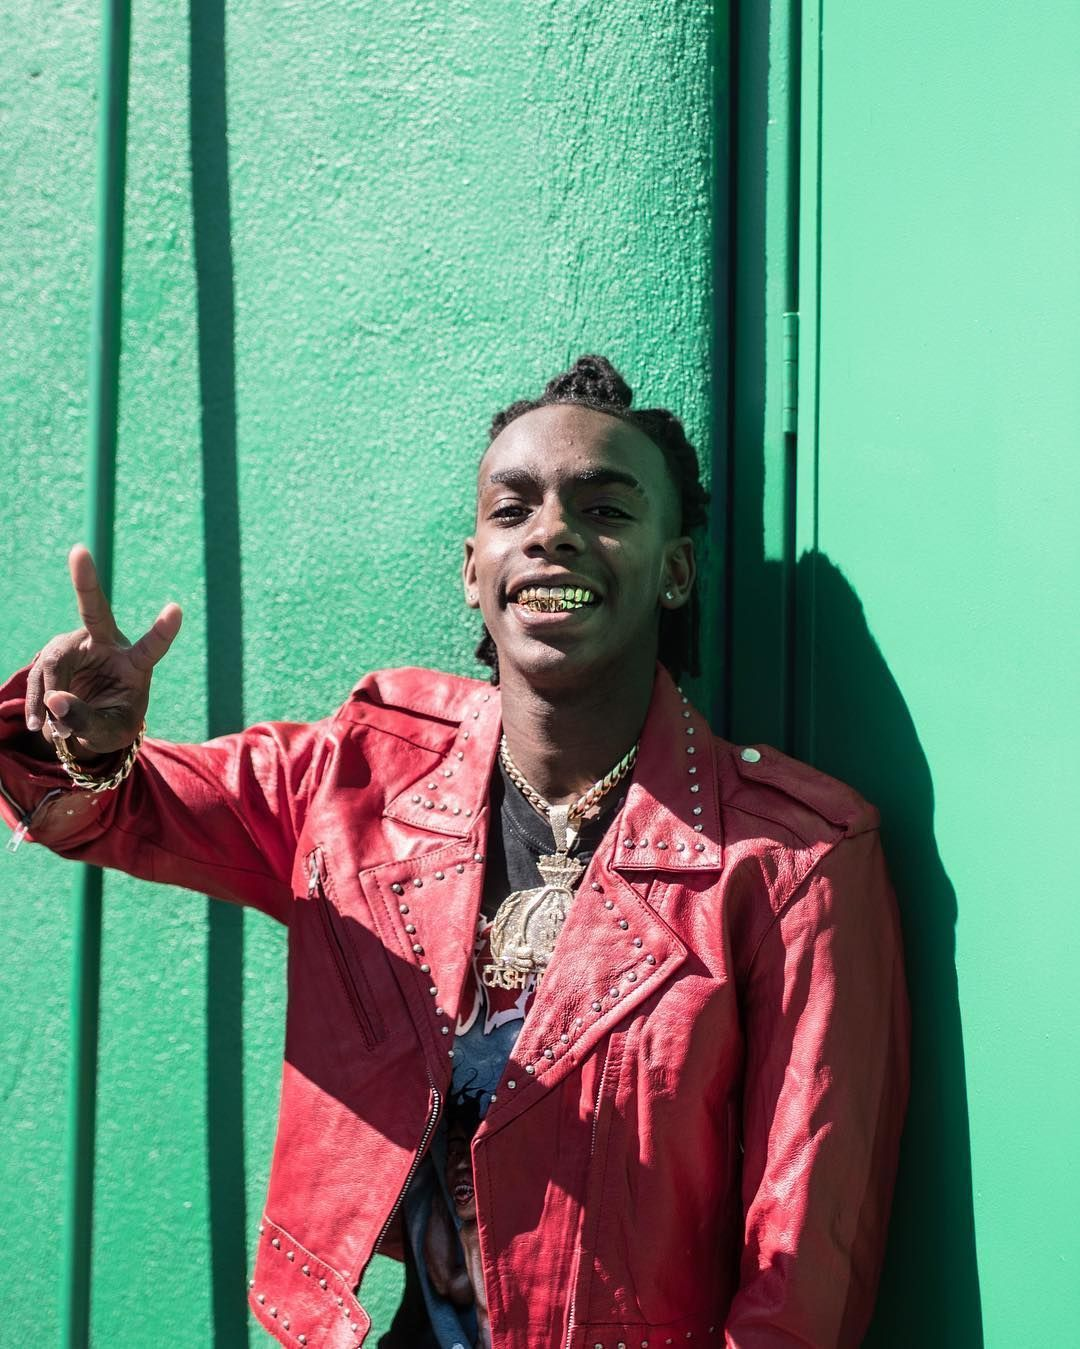 YNW Melly Wallpapers - Top Free YNW Melly Backgrounds ...